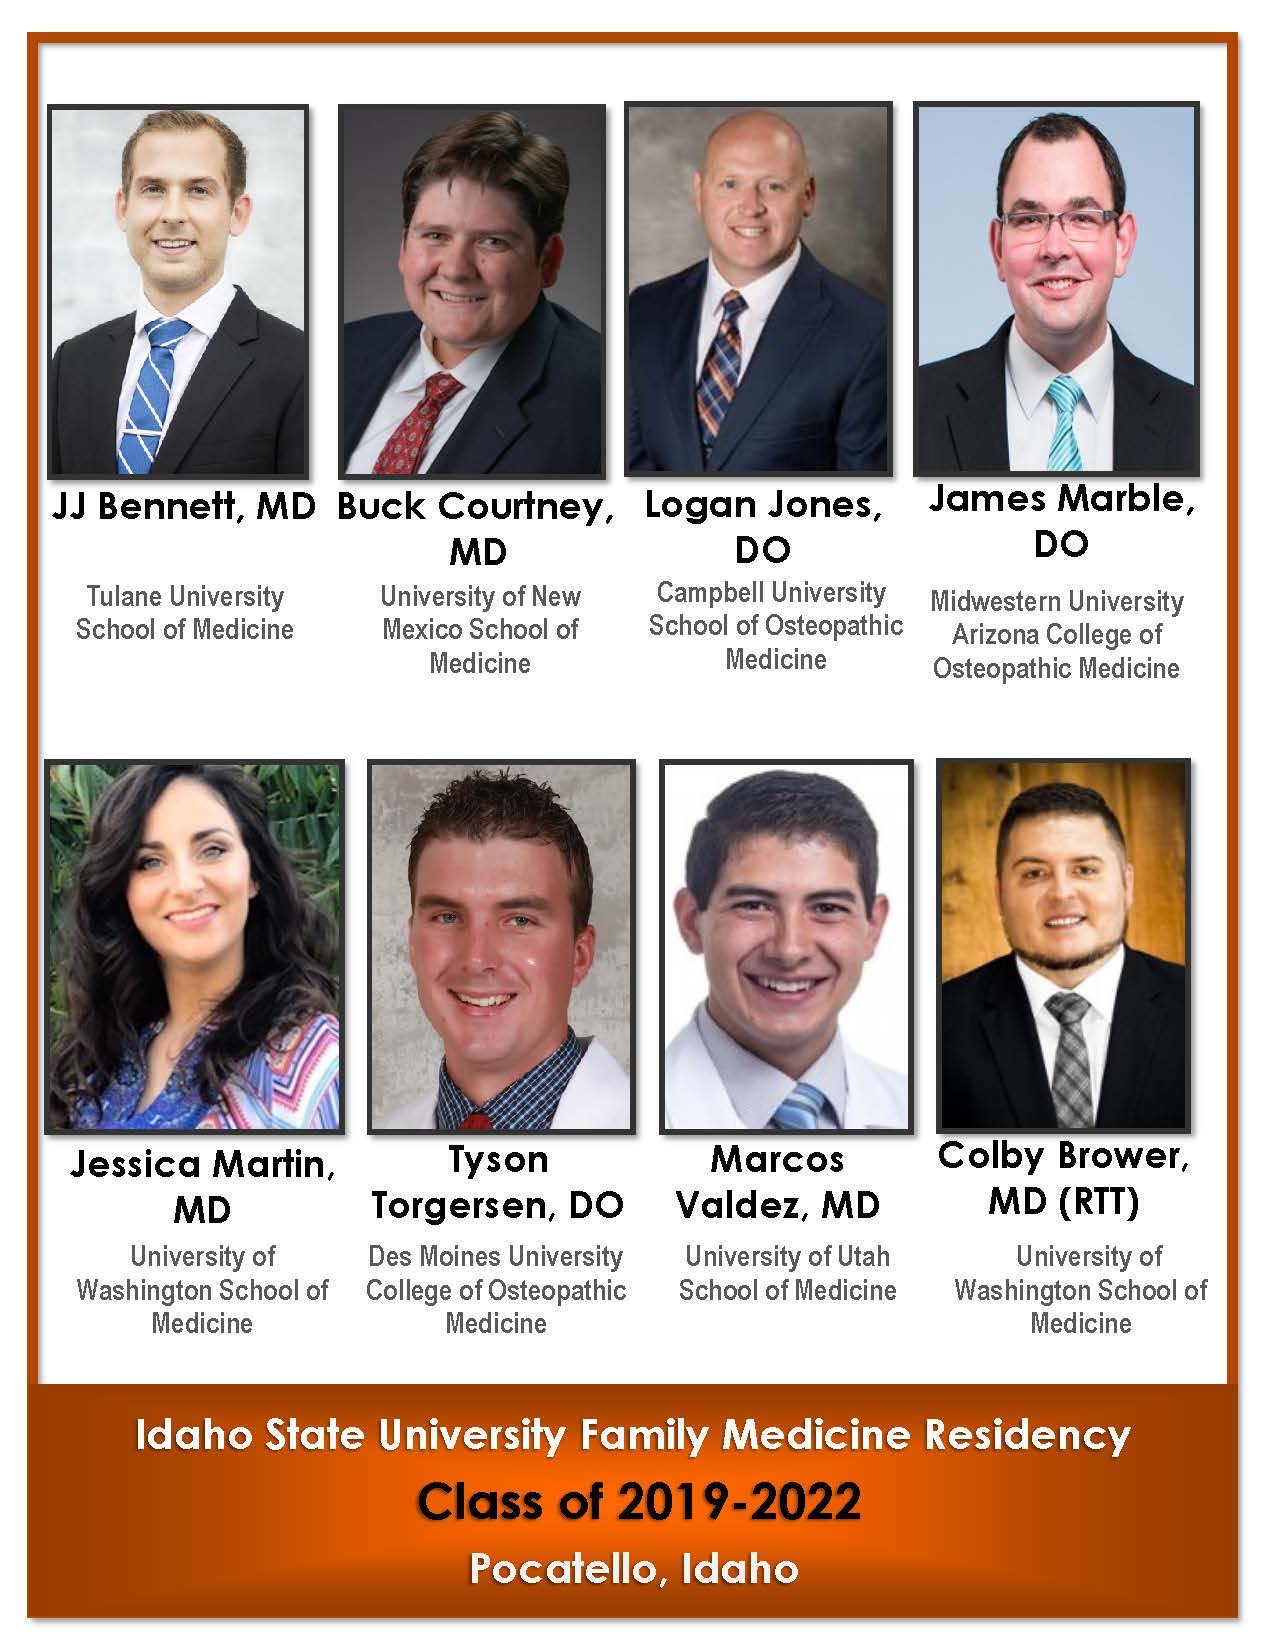 Eight images showing the new Family Medicine Residency Class of 2022 physicians